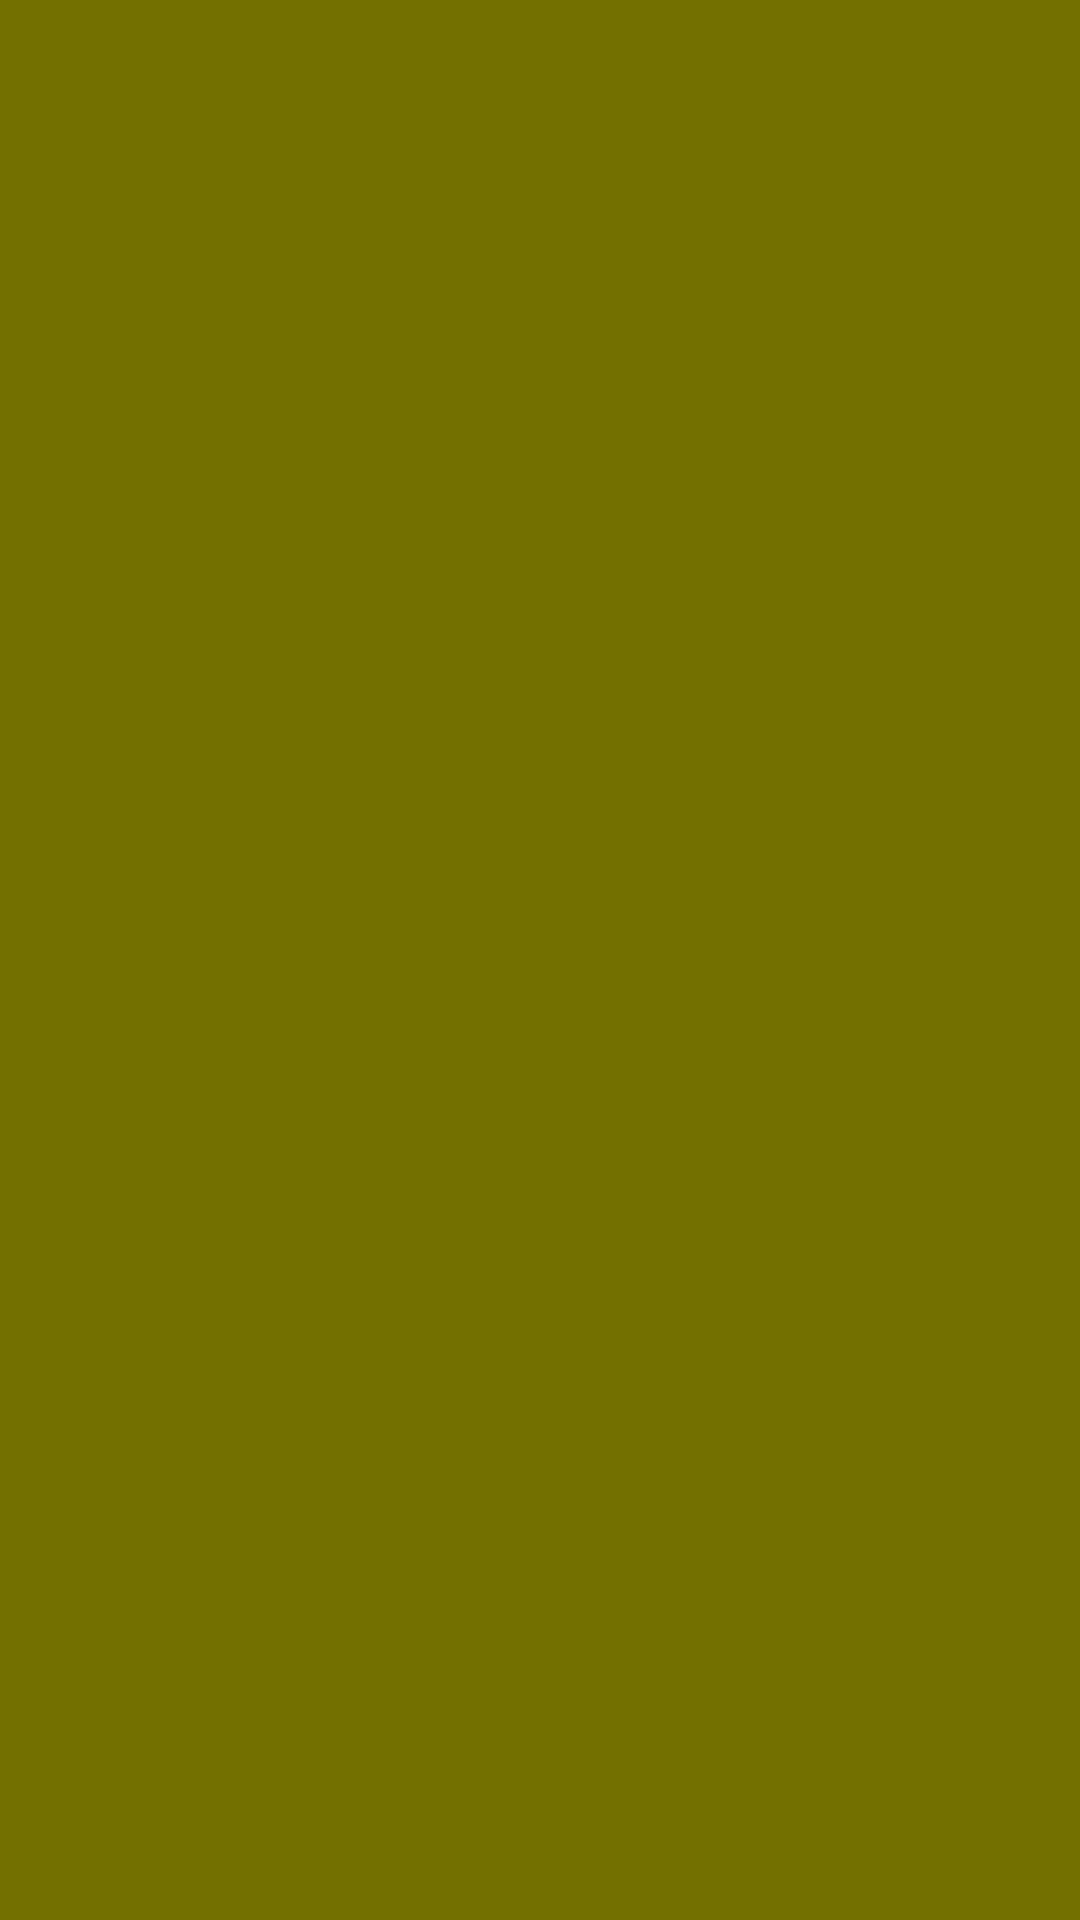 1080x1920 Bronze Yellow Solid Color Background